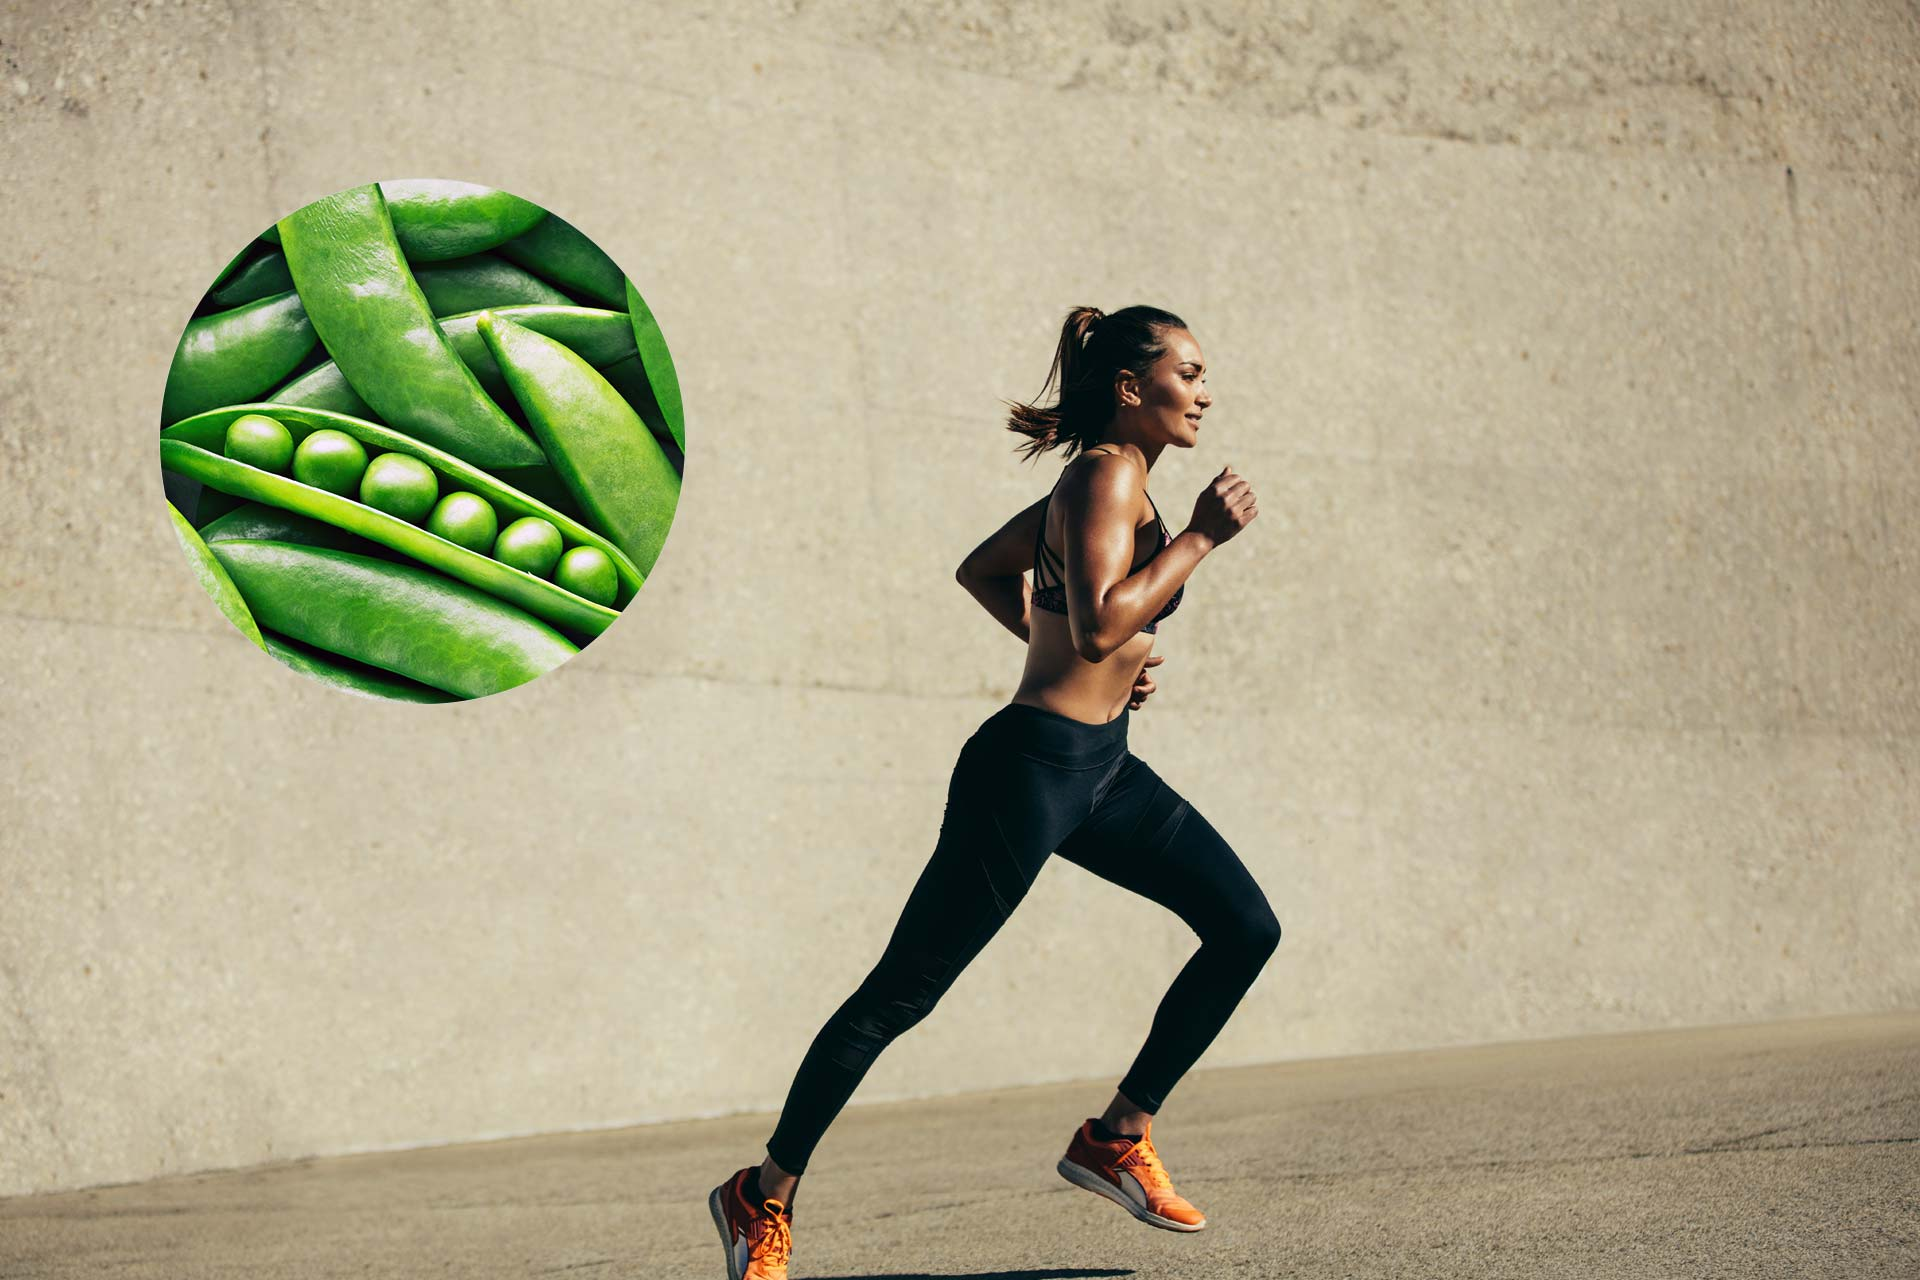 A woman running with an inset image of pea pods